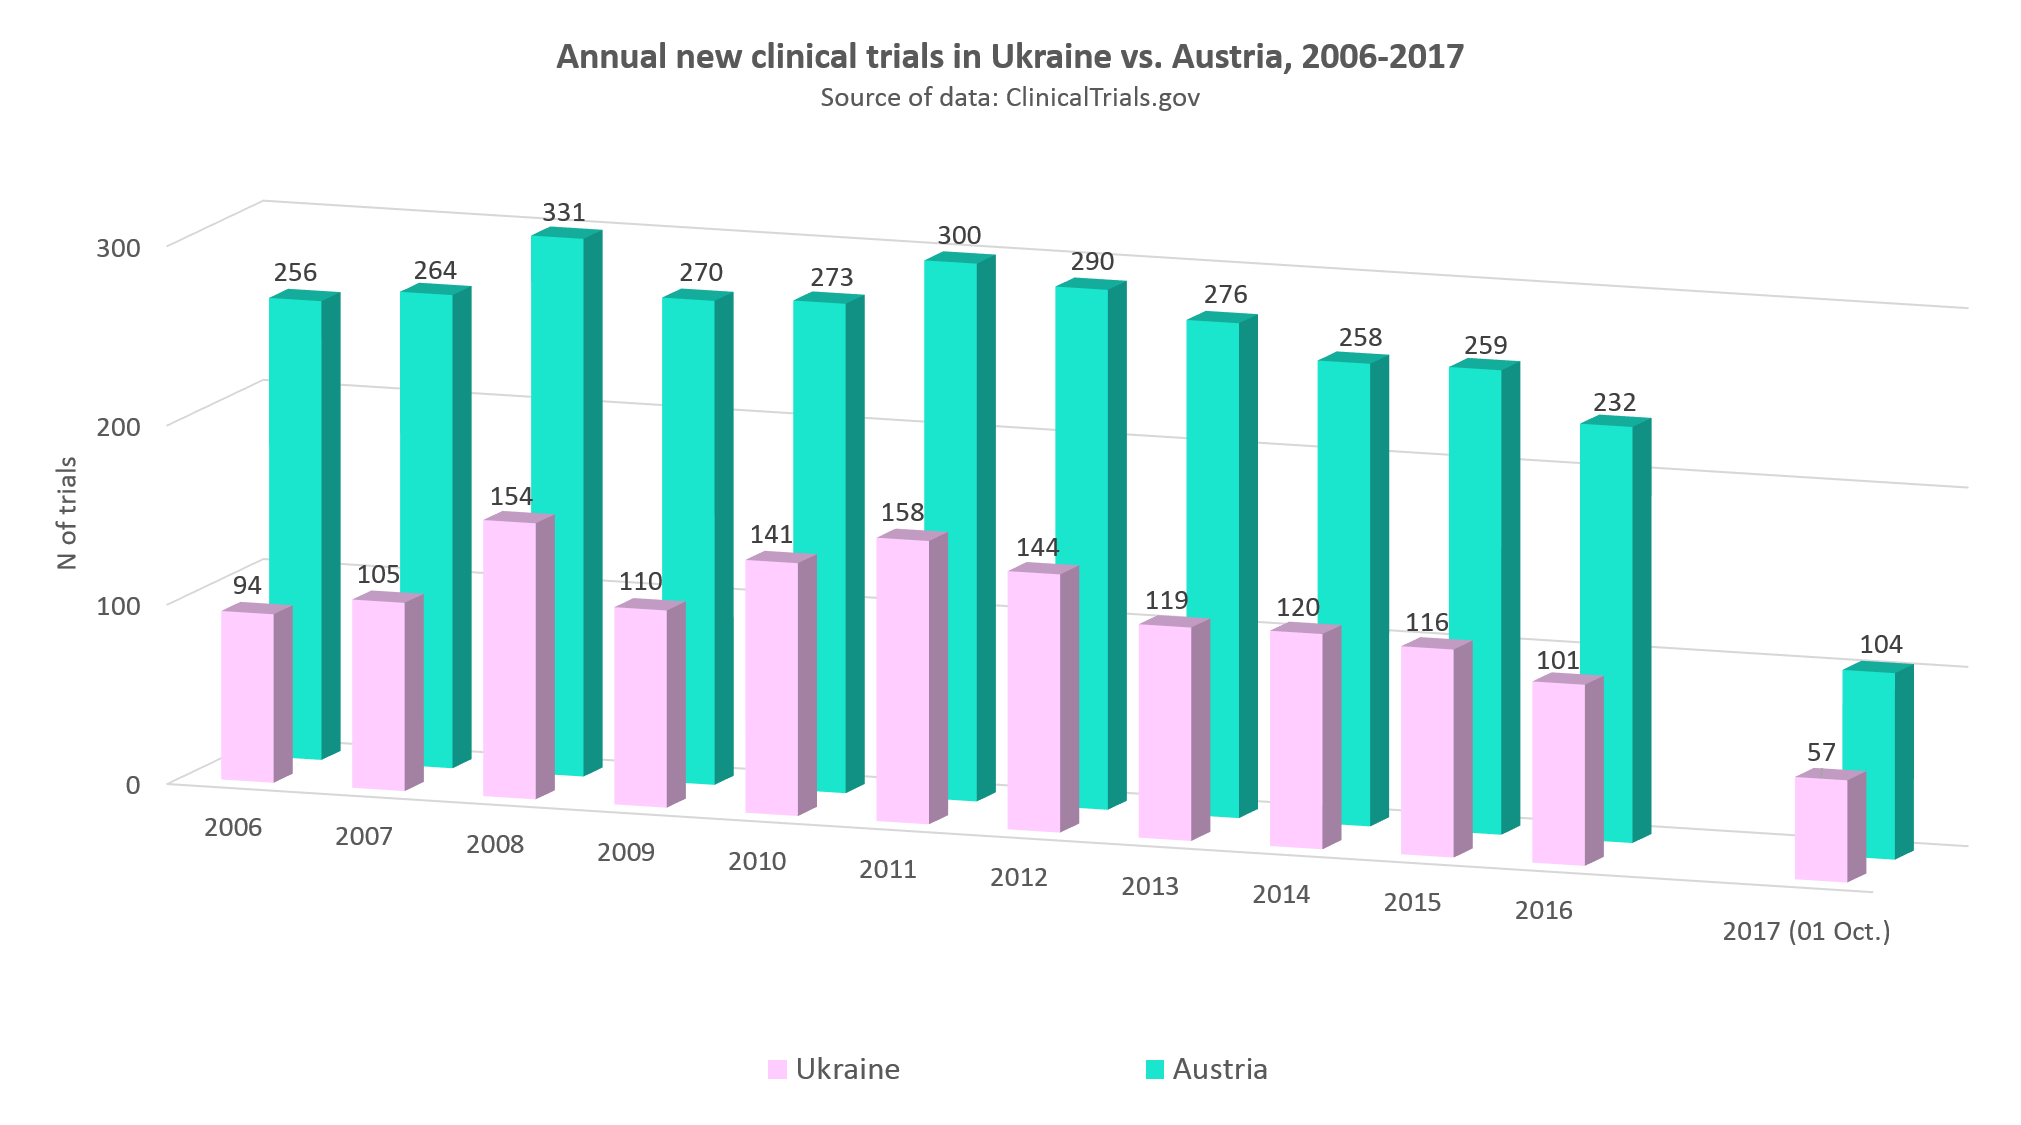 Annual new clinical trials in Ukraine vs. Austria, 2006-2017